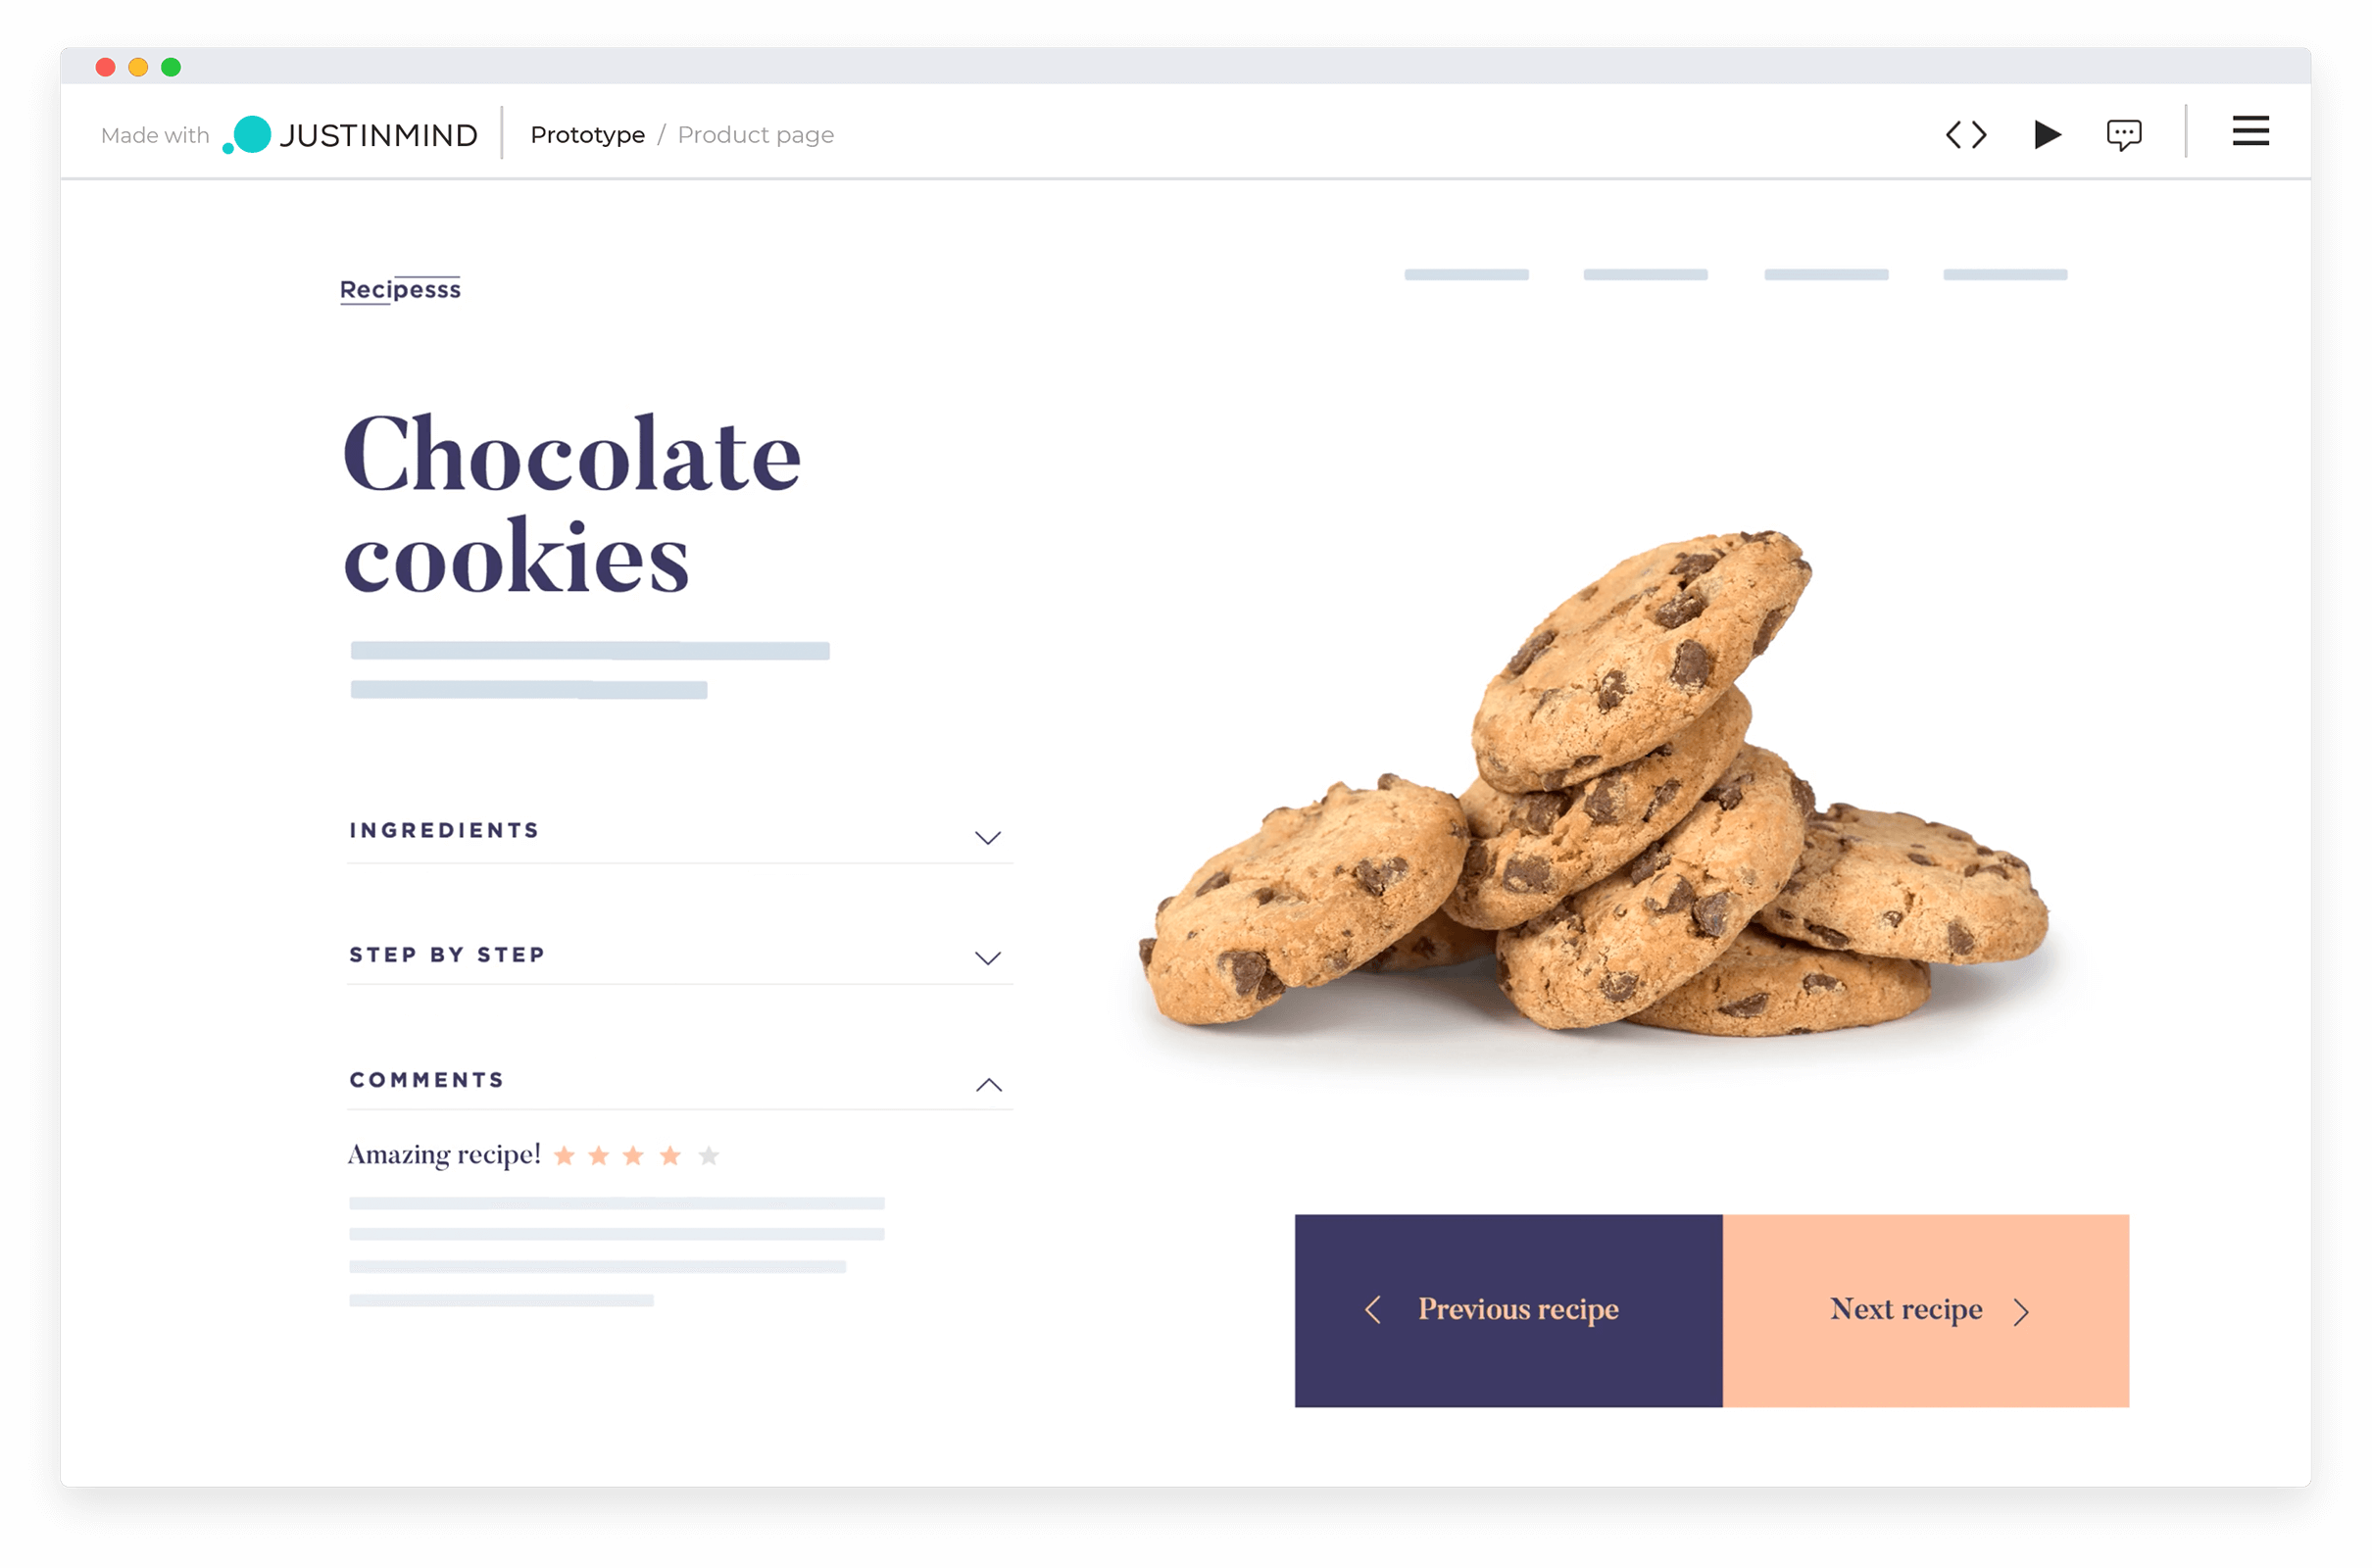 website mockup tool to validate interactions and user flows